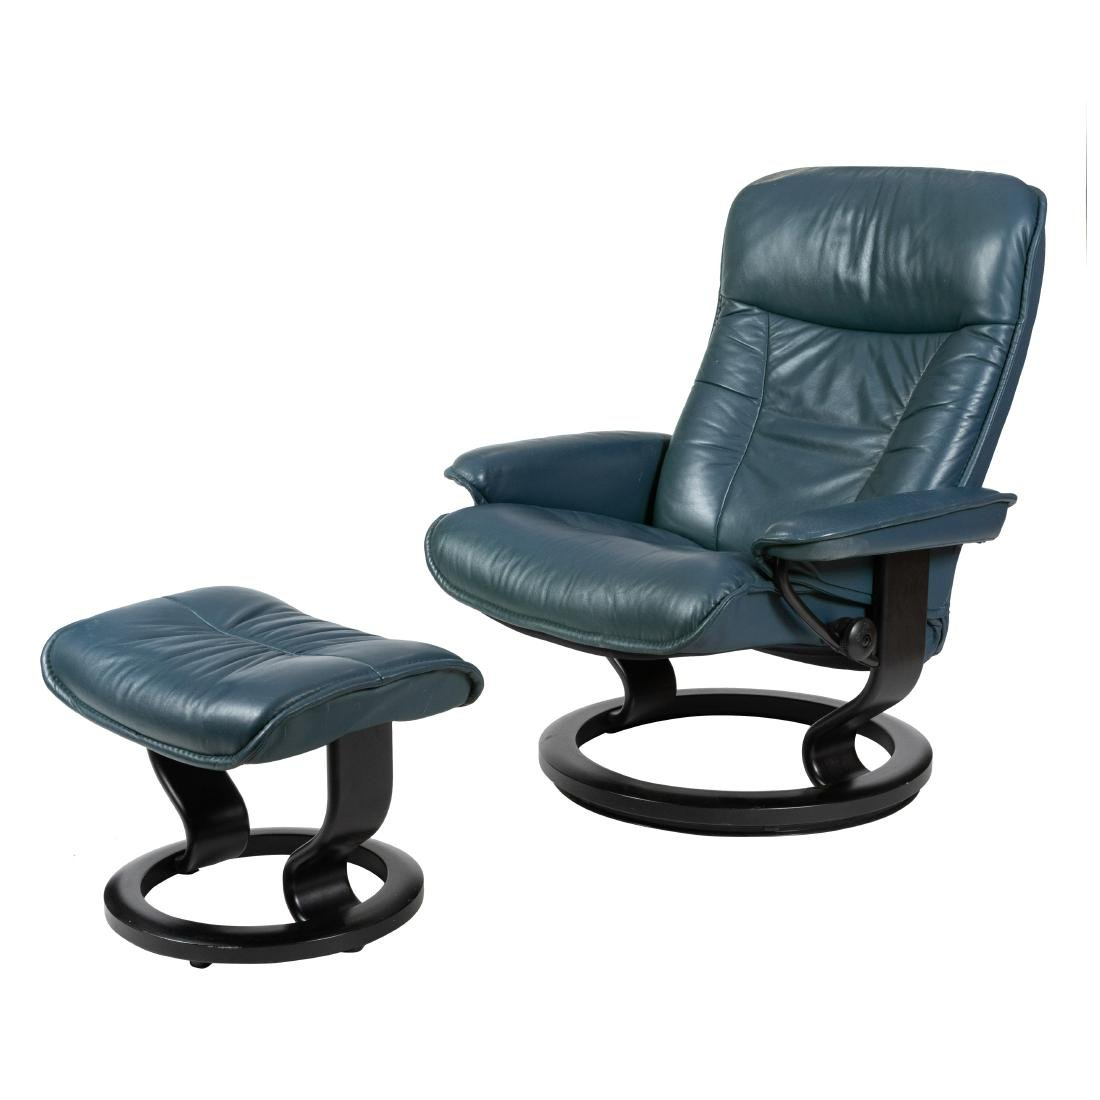 Ekornes Stressless - Chair and Ottoman